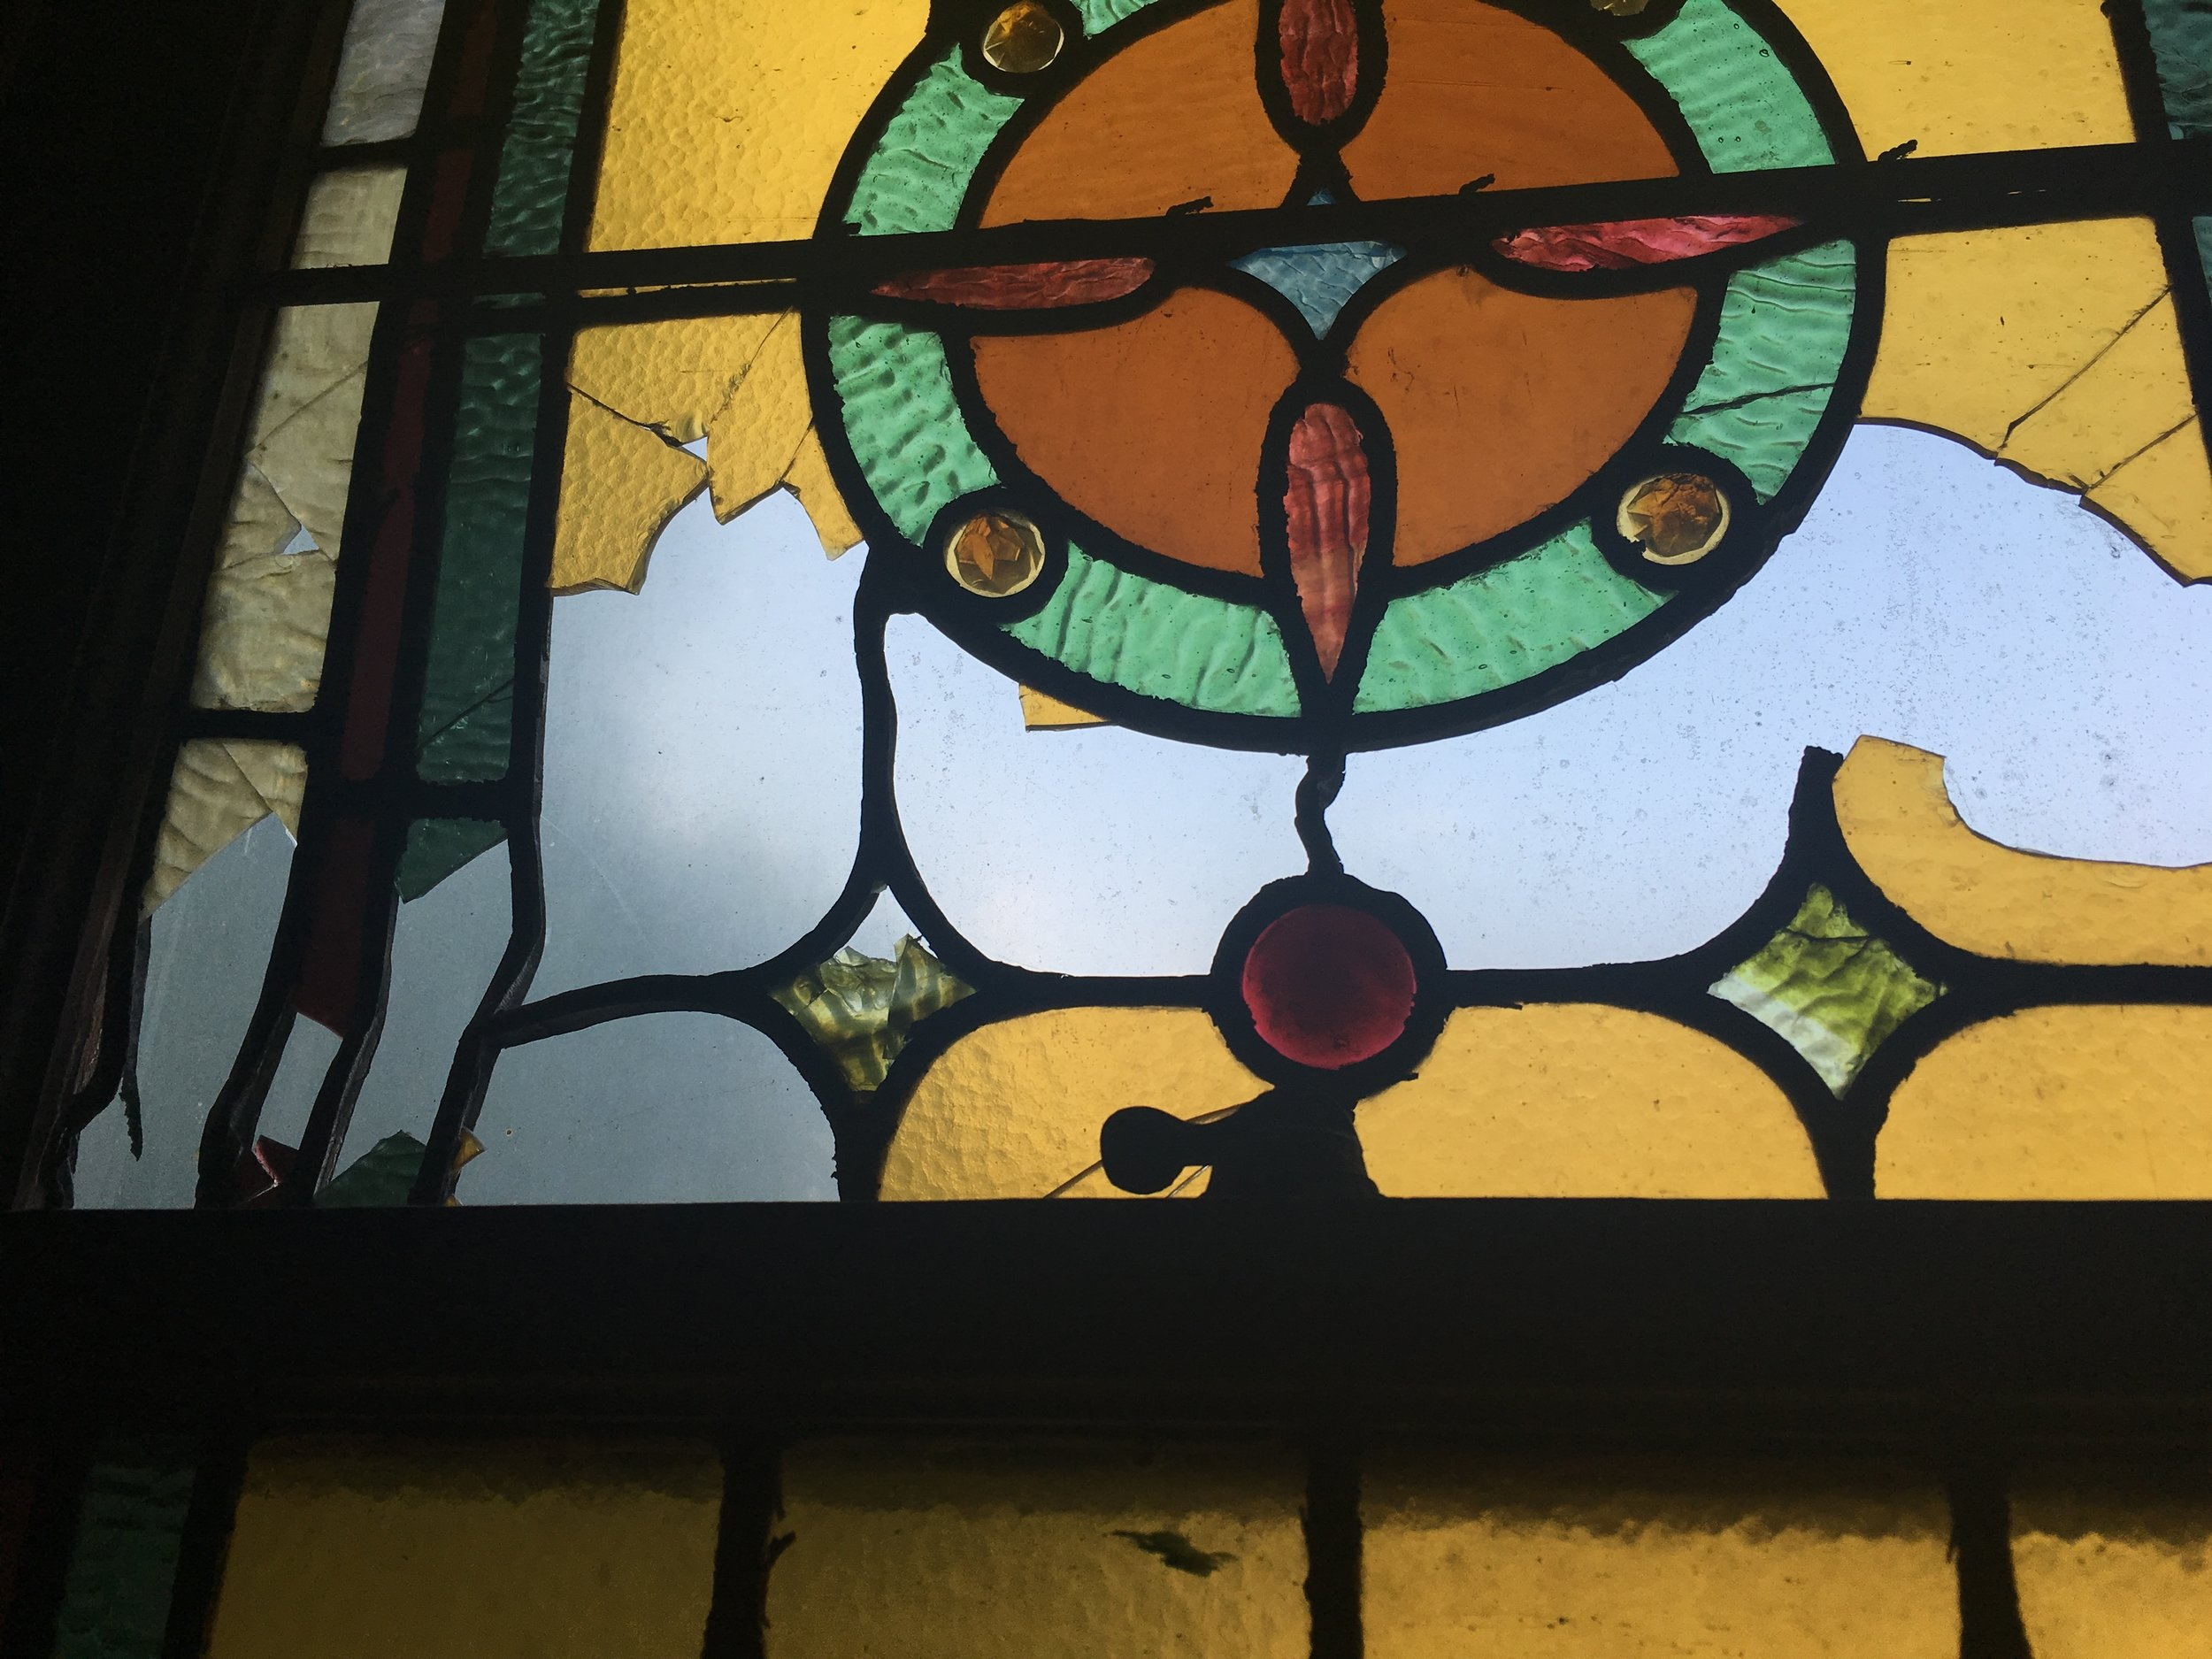 Many of the stained glass windows have been damaged since 1923 from a fire next door.